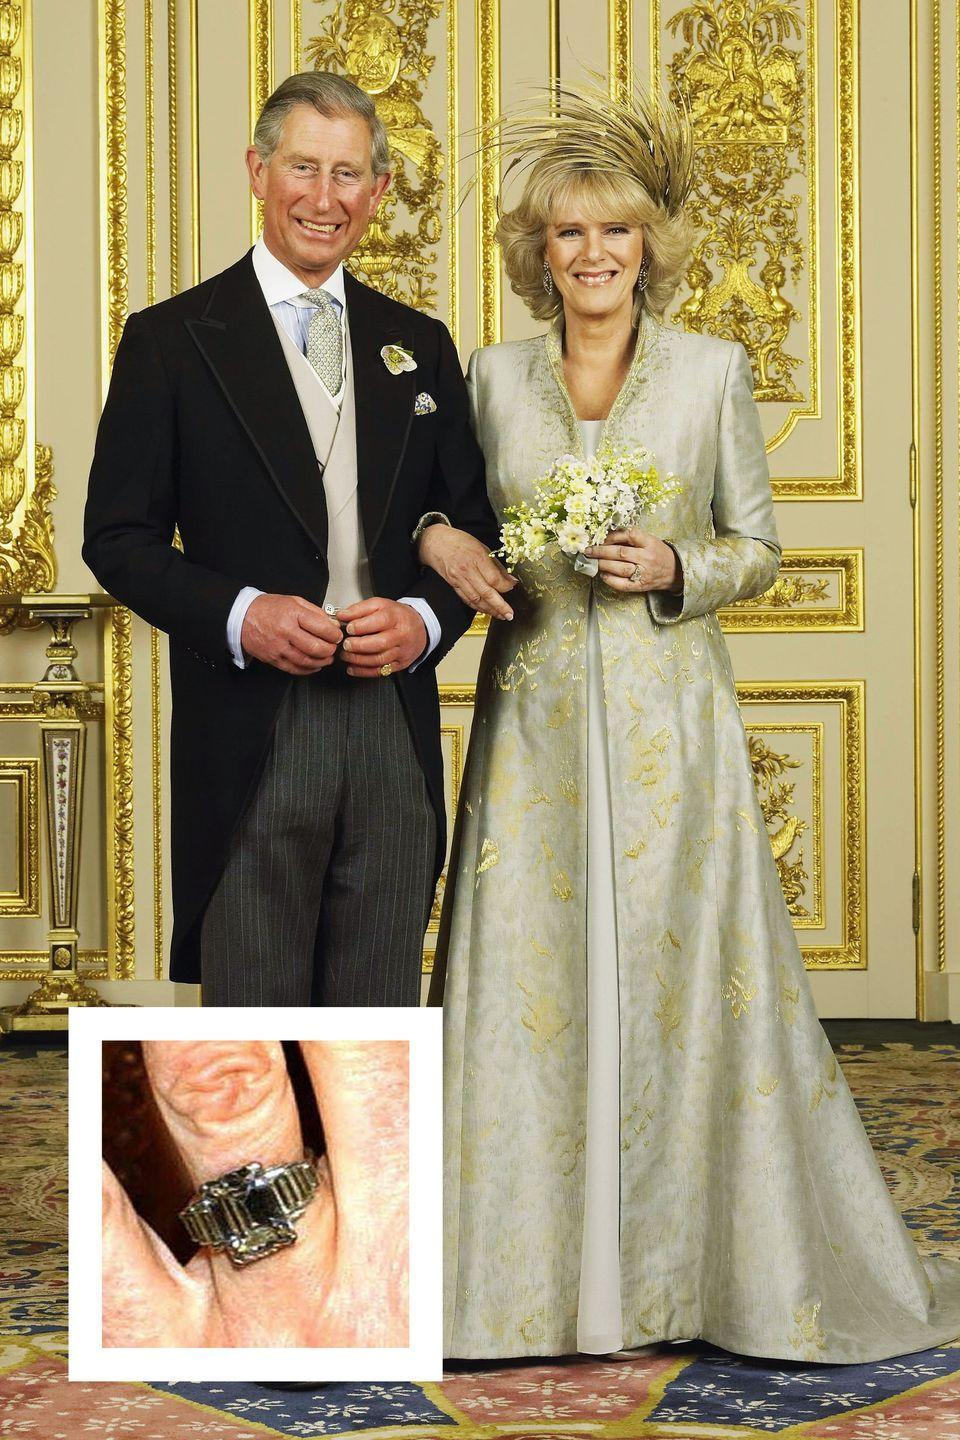 """<p><a href=""""https://www.townandcountrymag.com/society/a9961113/prince-charles-camilla-parker-bowles-relationship/"""" rel=""""nofollow noopener"""" target=""""_blank"""" data-ylk=""""slk:Prince Charles and Camilla announced"""" class=""""link rapid-noclick-resp"""">Prince Charles and Camilla announced</a> their engagement in February 2005. Charles proposed with a ring that once belonged to his grandmother, the Queen Mother. The emerald-cut center stone is surrounded by six diamond baguettes and was designed in the 1920s, <a href=""""https://us.hellomagazine.com/royalty/2015021023346/duchess-cornwall-engagement-ring-comparison/"""" rel=""""nofollow noopener"""" target=""""_blank"""" data-ylk=""""slk:according to Hello! Magazine."""" class=""""link rapid-noclick-resp"""">according to <em>Hello!</em> Magazine.</a></p>"""